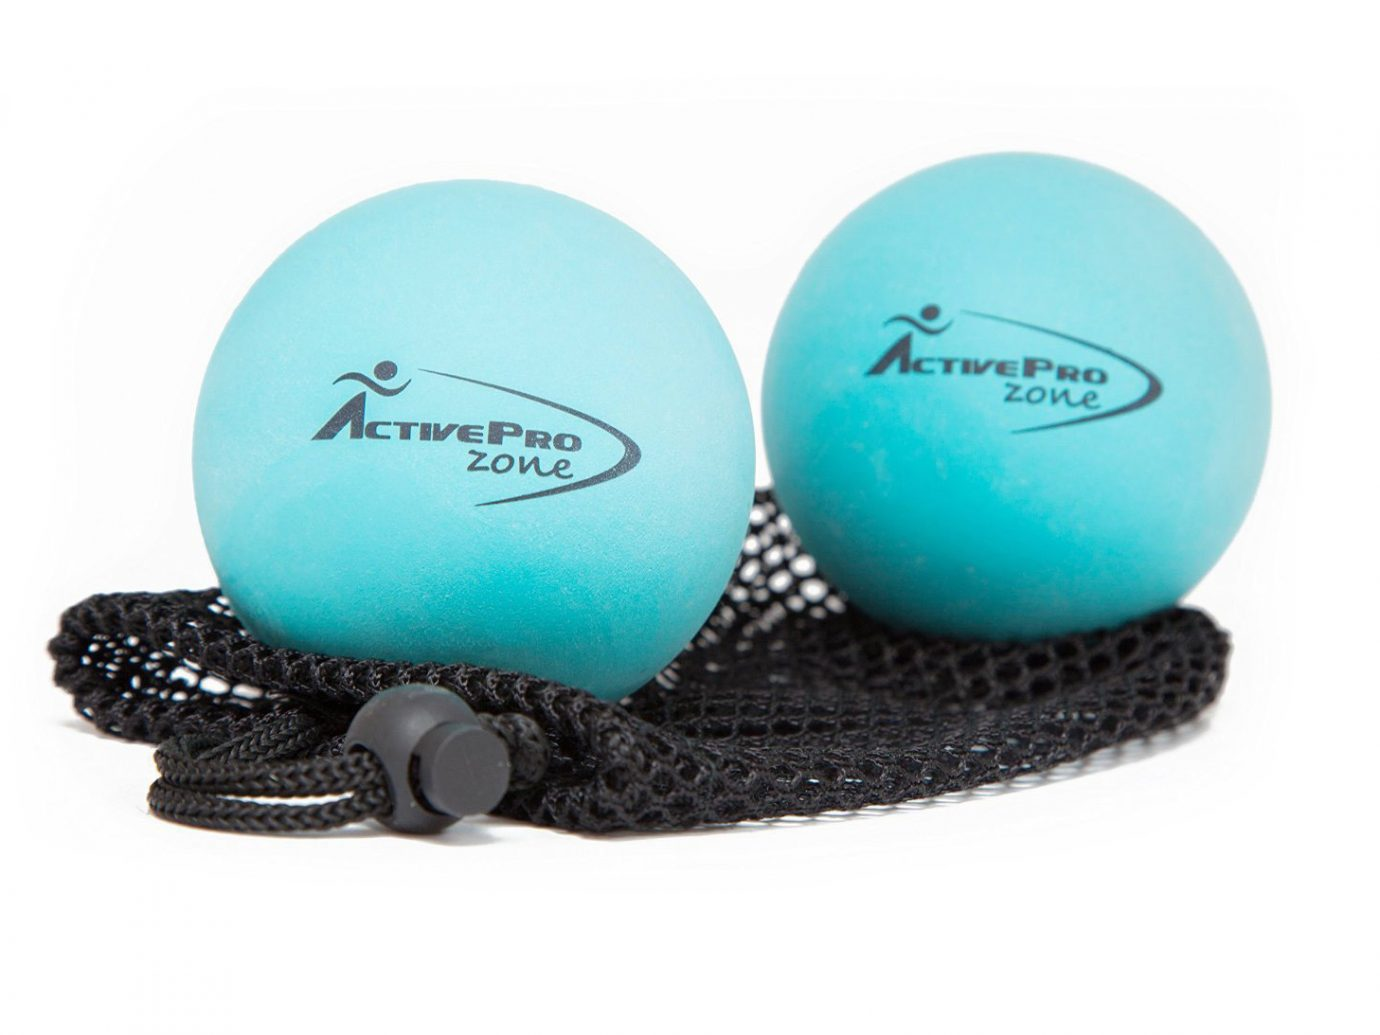 Health + Wellness Travel Tips ball toy sports equipment turquoise coin purse